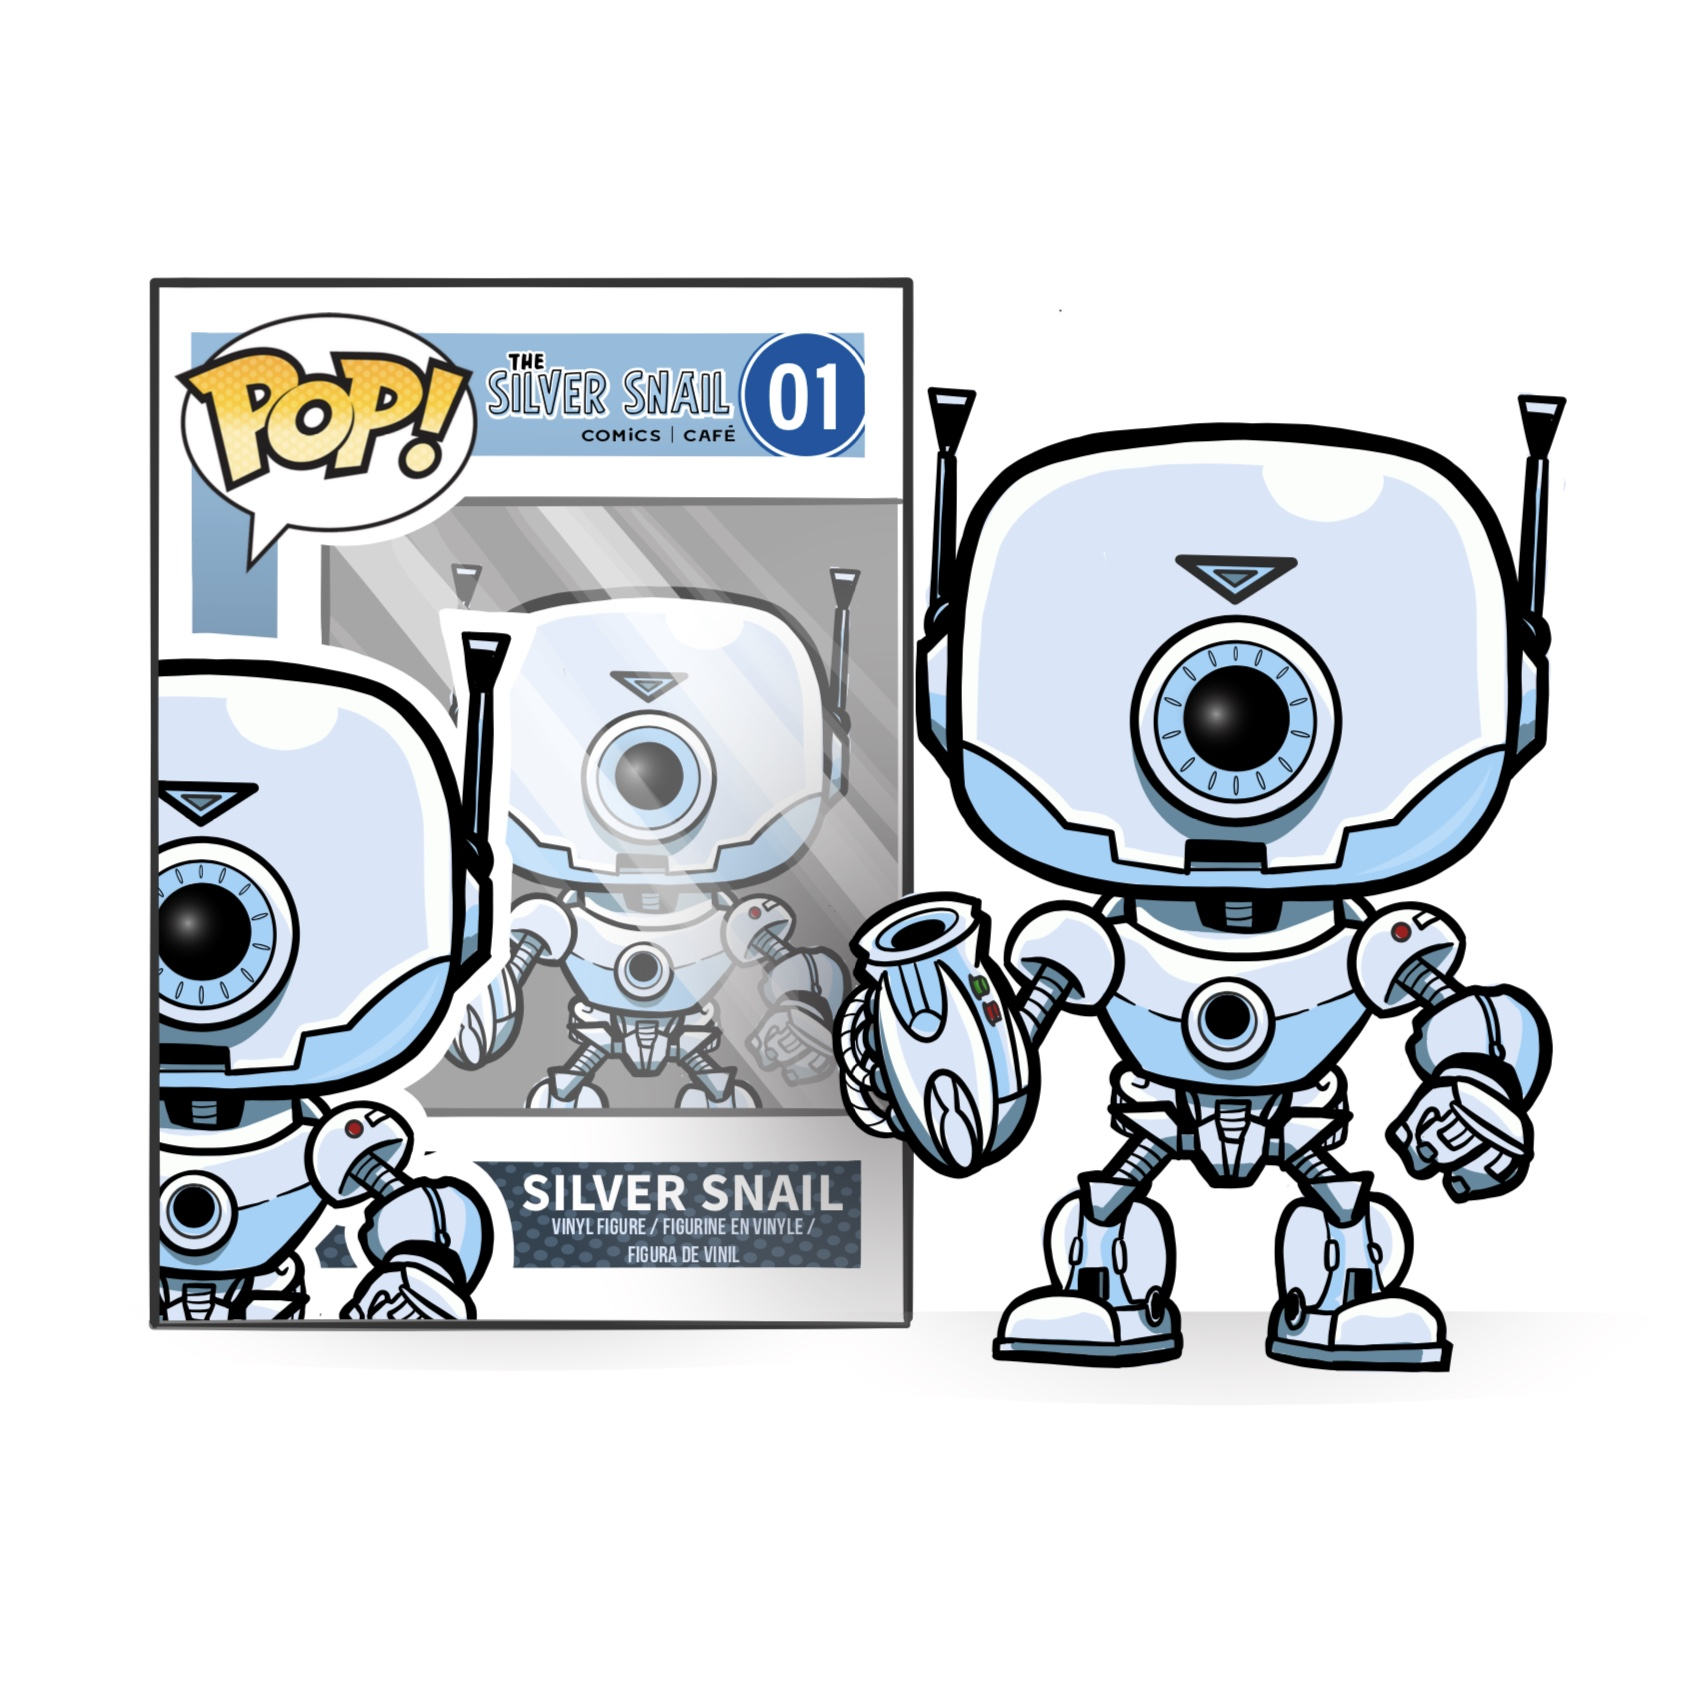 - F U N K O   P O P   V I N Y L   F I G U R EThis custom pop figure is an exciting edition to the Silver Snail's own merchandise. The popular vinyl figures will draw attention to fans and allow the Silver Snail to mingle with their target audience on a personal level.